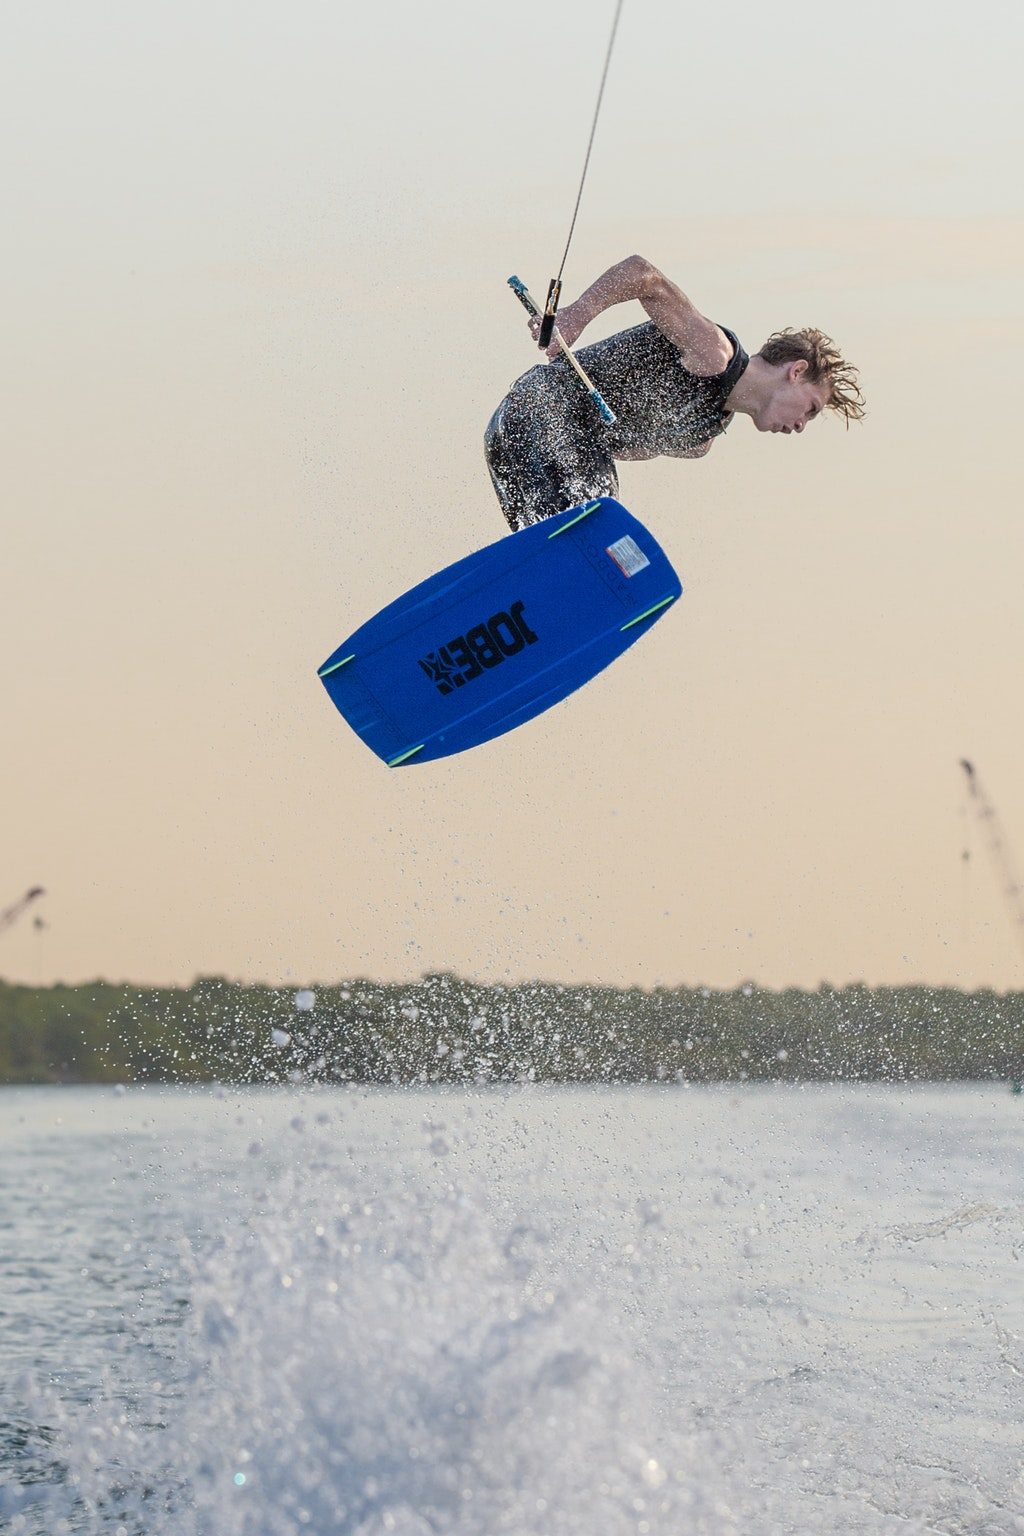 Travis Beaton at the 2019 Worlds Abu Dhabi